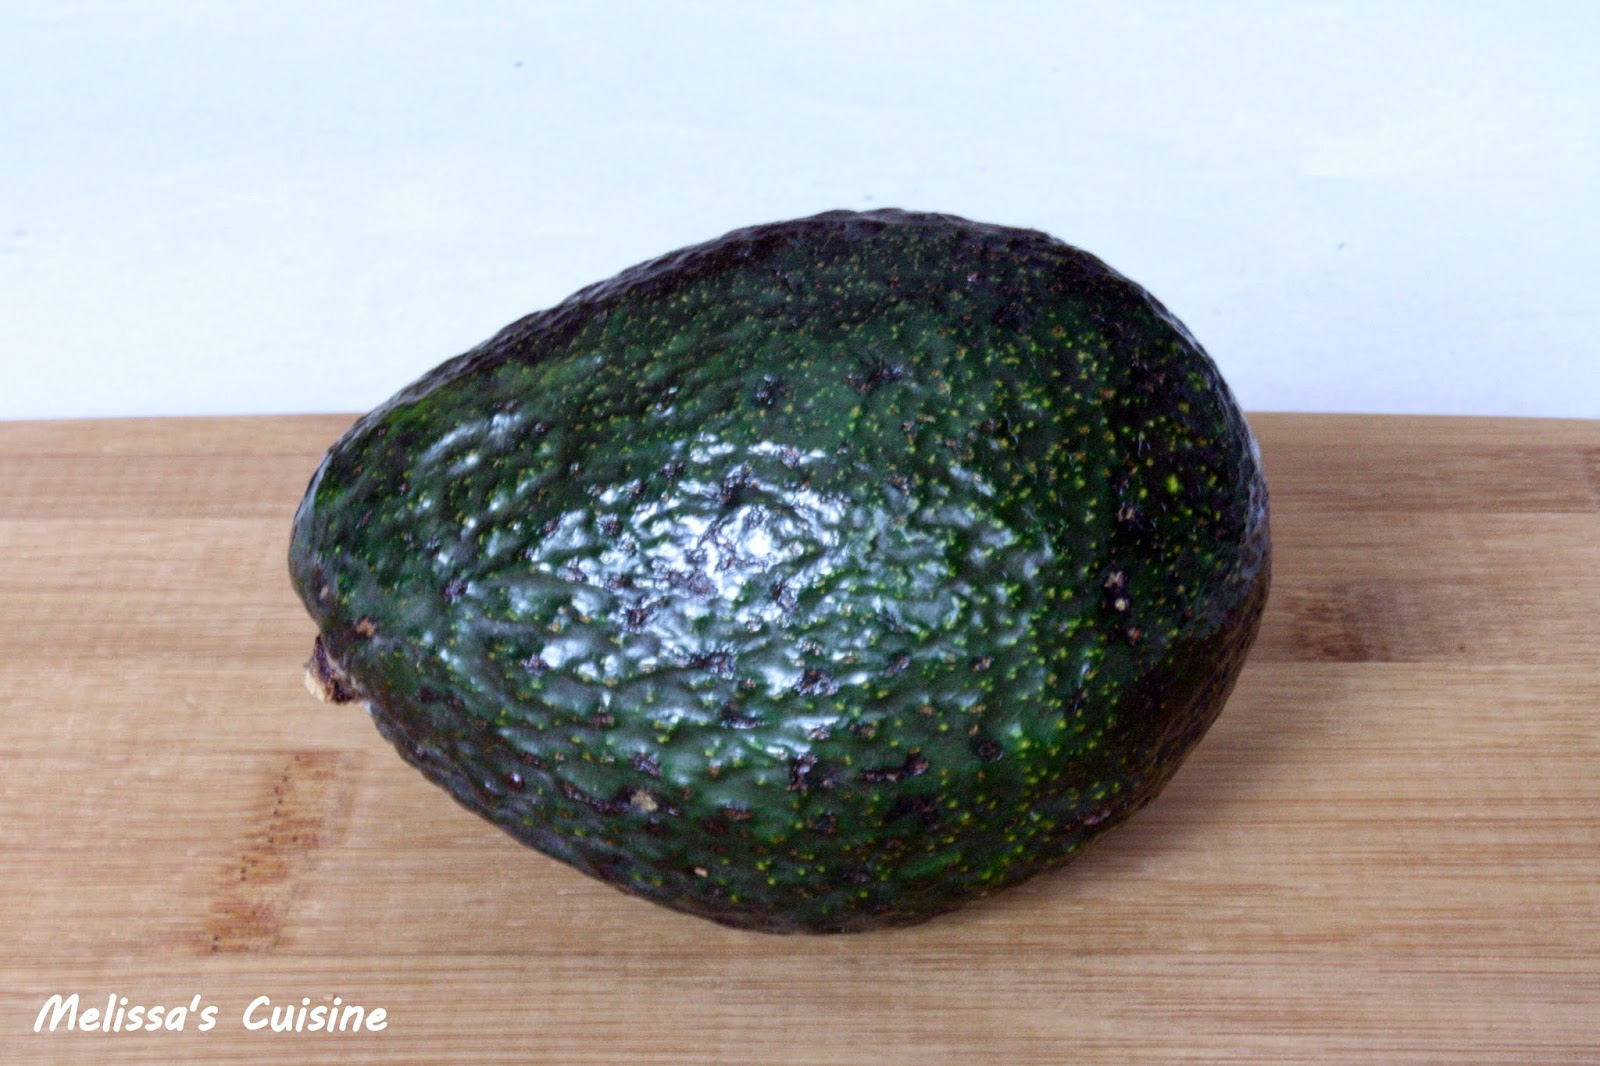 Melissa's Cuisine:  Avocados:  Tips and Tricks